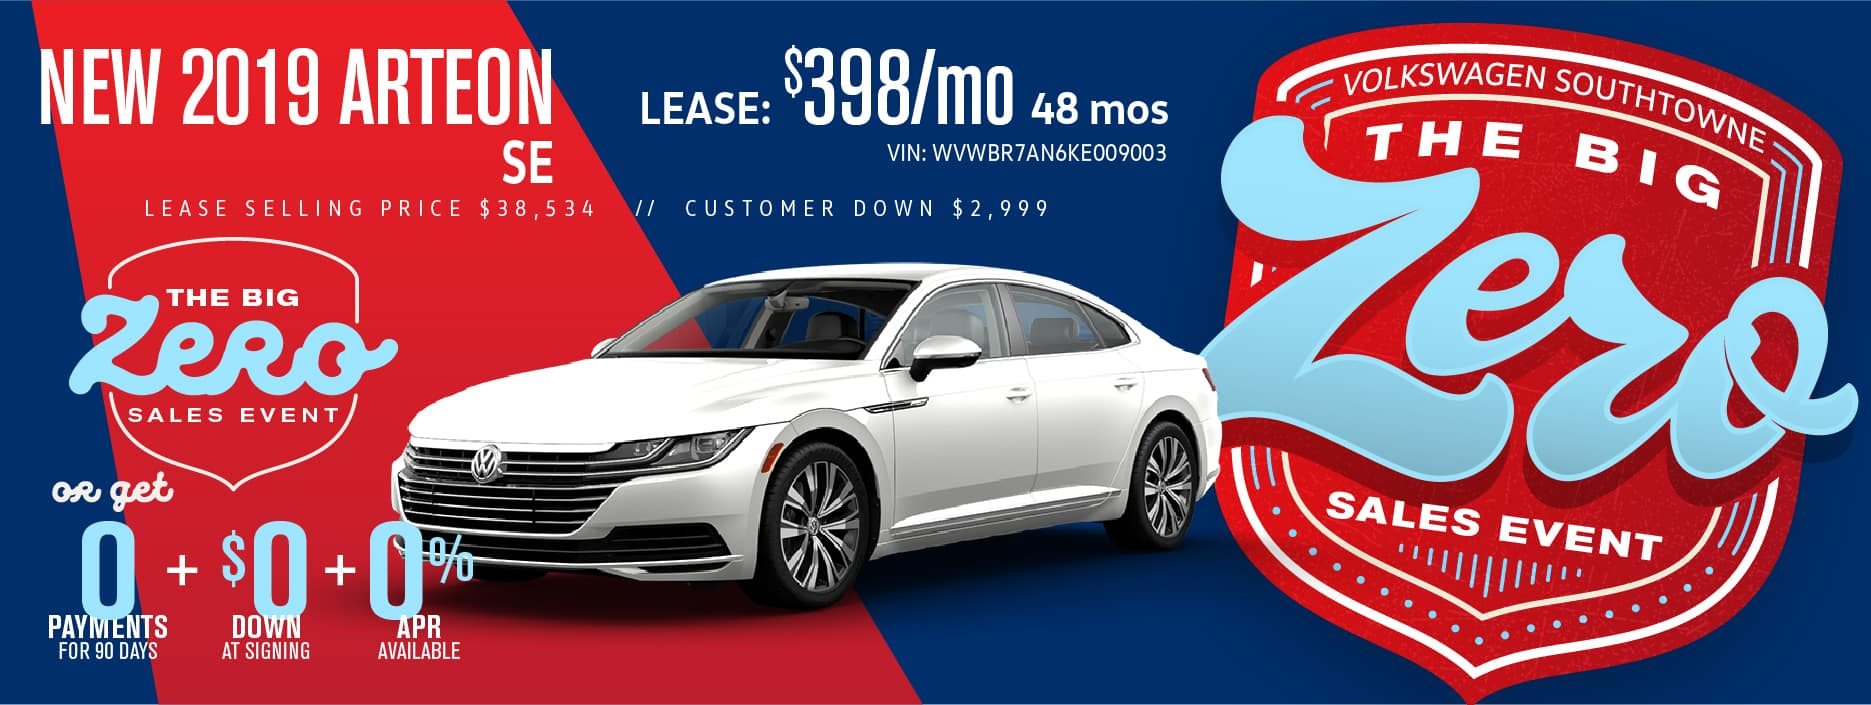 Get an Arteon for $0 down! during our BIG ZERO Sale!